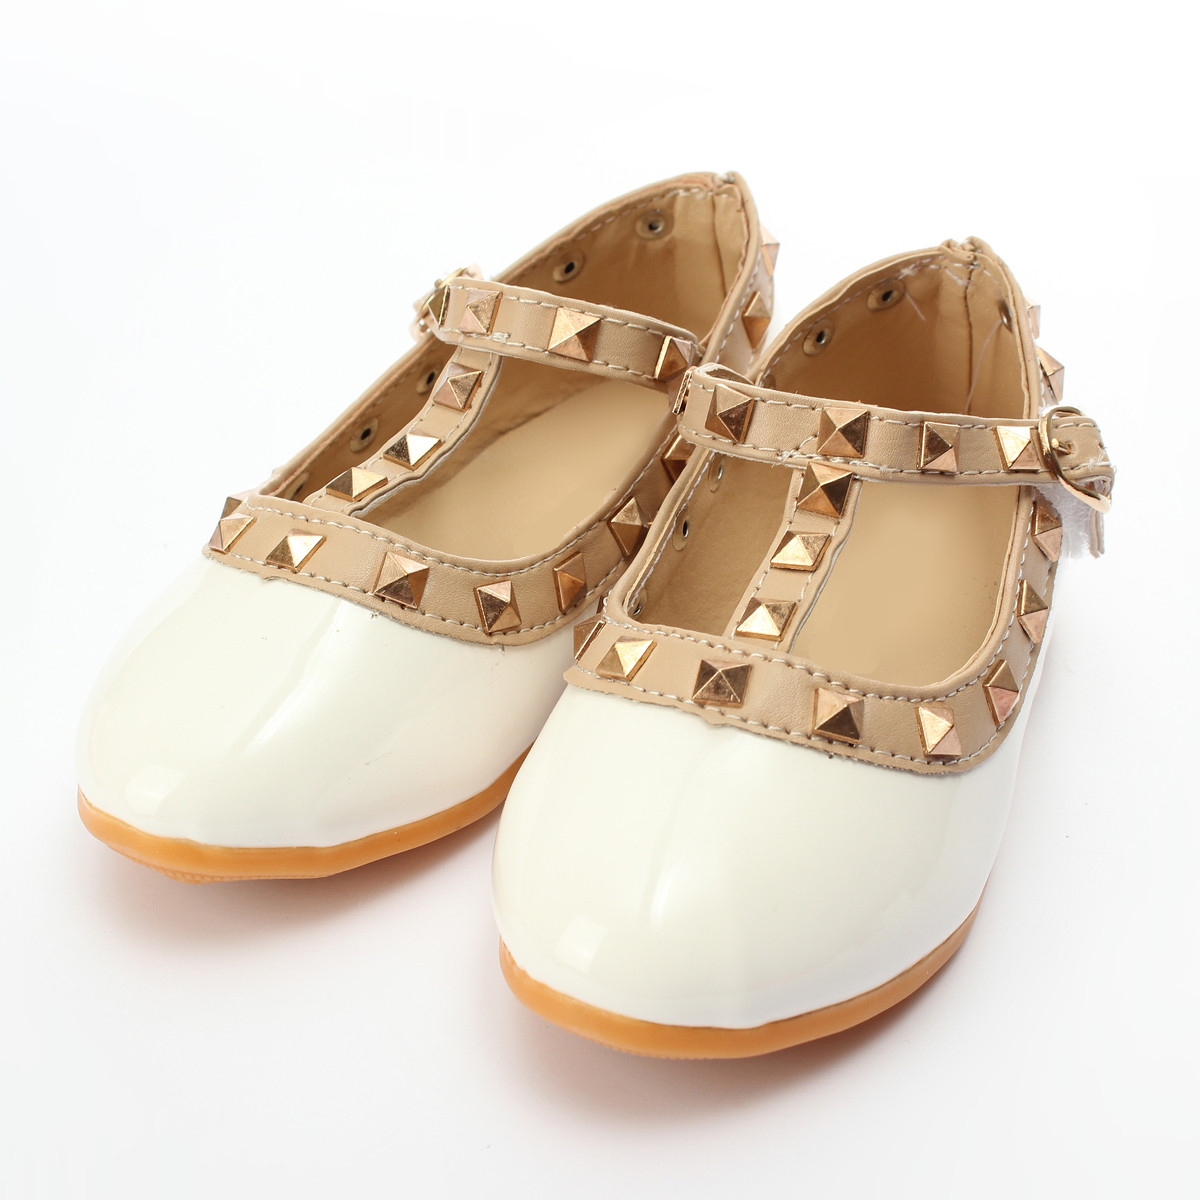 New Girl Kids Toddler Princess Sandals Anti-slip Sole Buckle and Rivet Decor T-strap Pointed Toe Flat With Comfortable Shoes